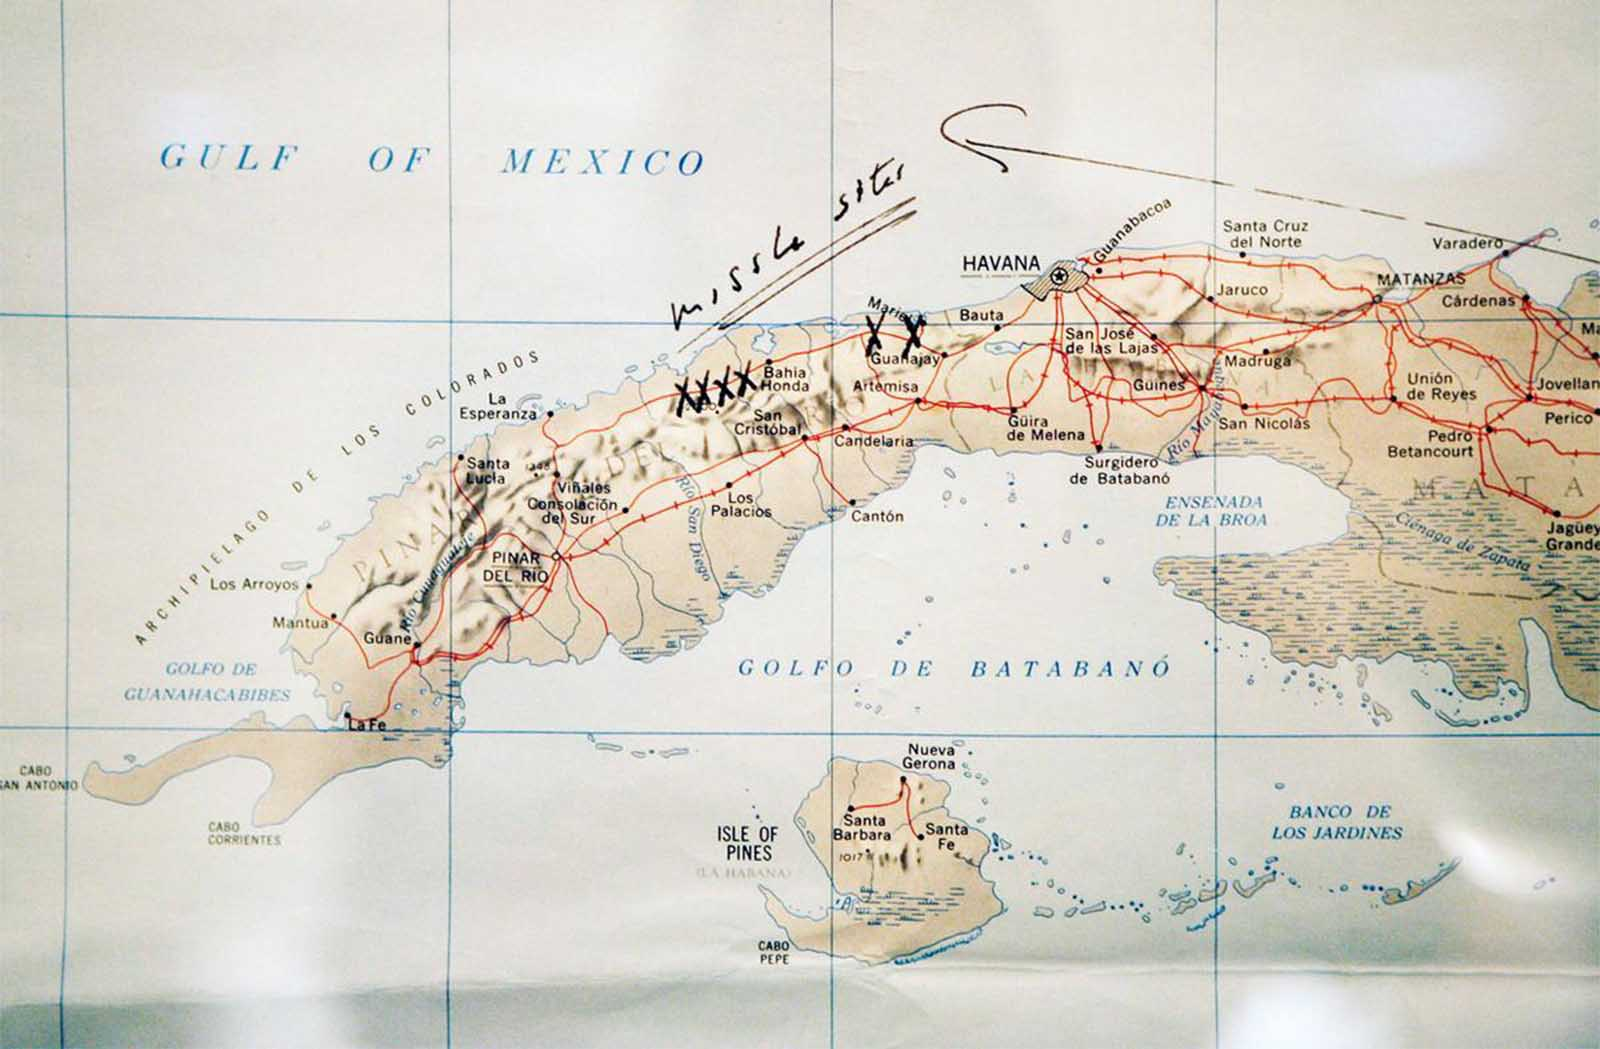 A map of Cuba annotated by former U.S. President John F. Kennedy, displayed for the first time at the John F. Kennedy Library in Boston, Massachusetts, on July 13, 2005. Former President Kennedy wrote